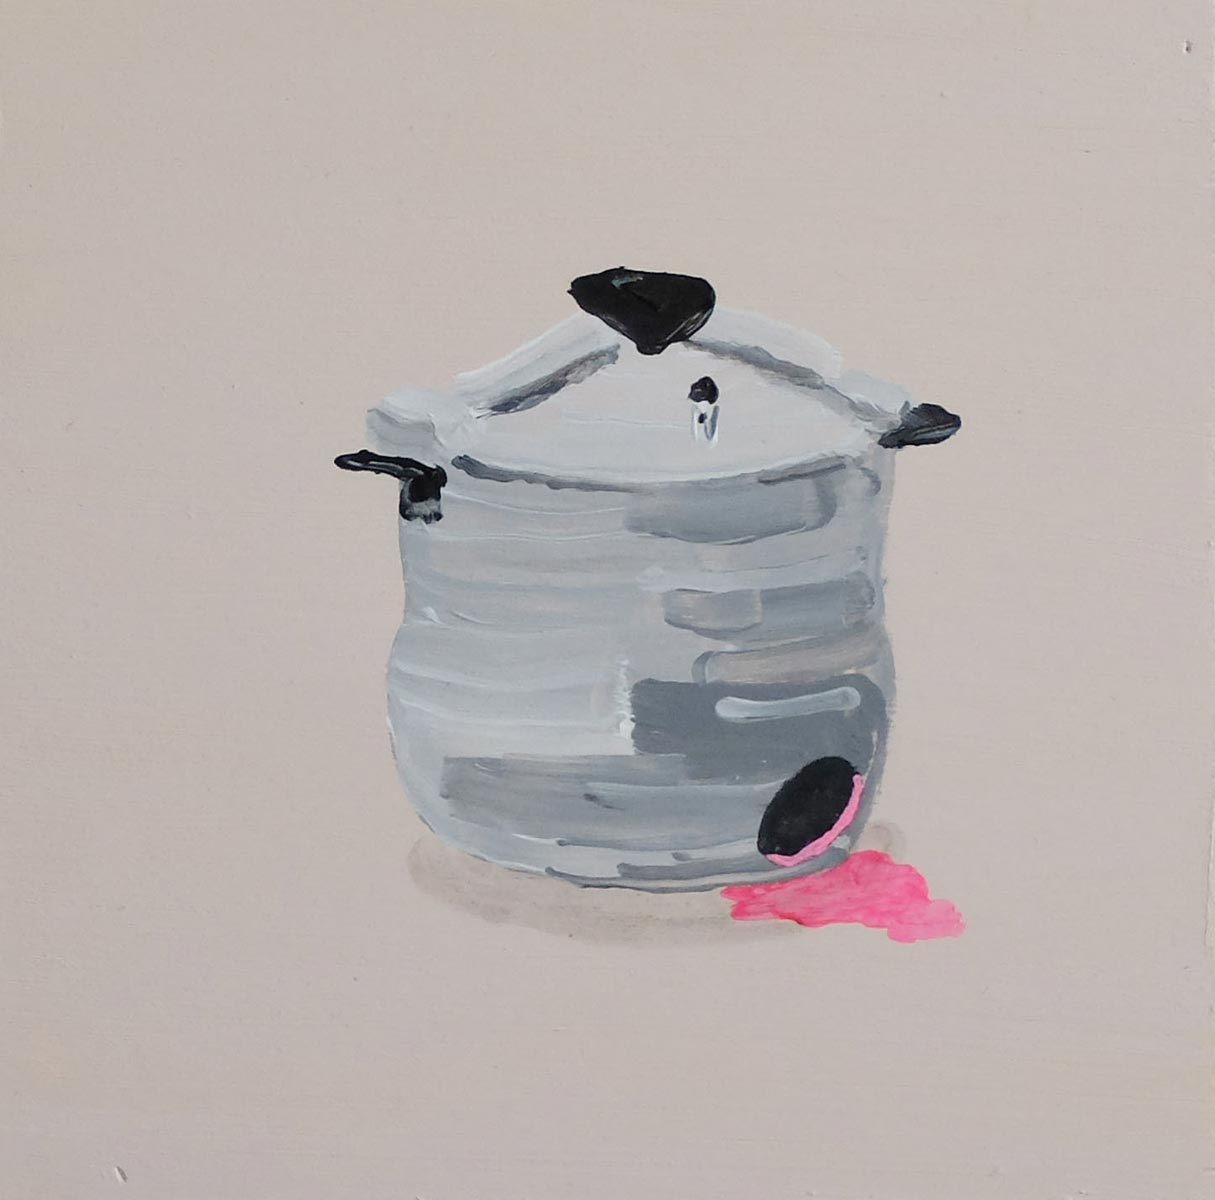 Dead olla exprés, 2016, acrylic on plywood, 20 x 20 cm